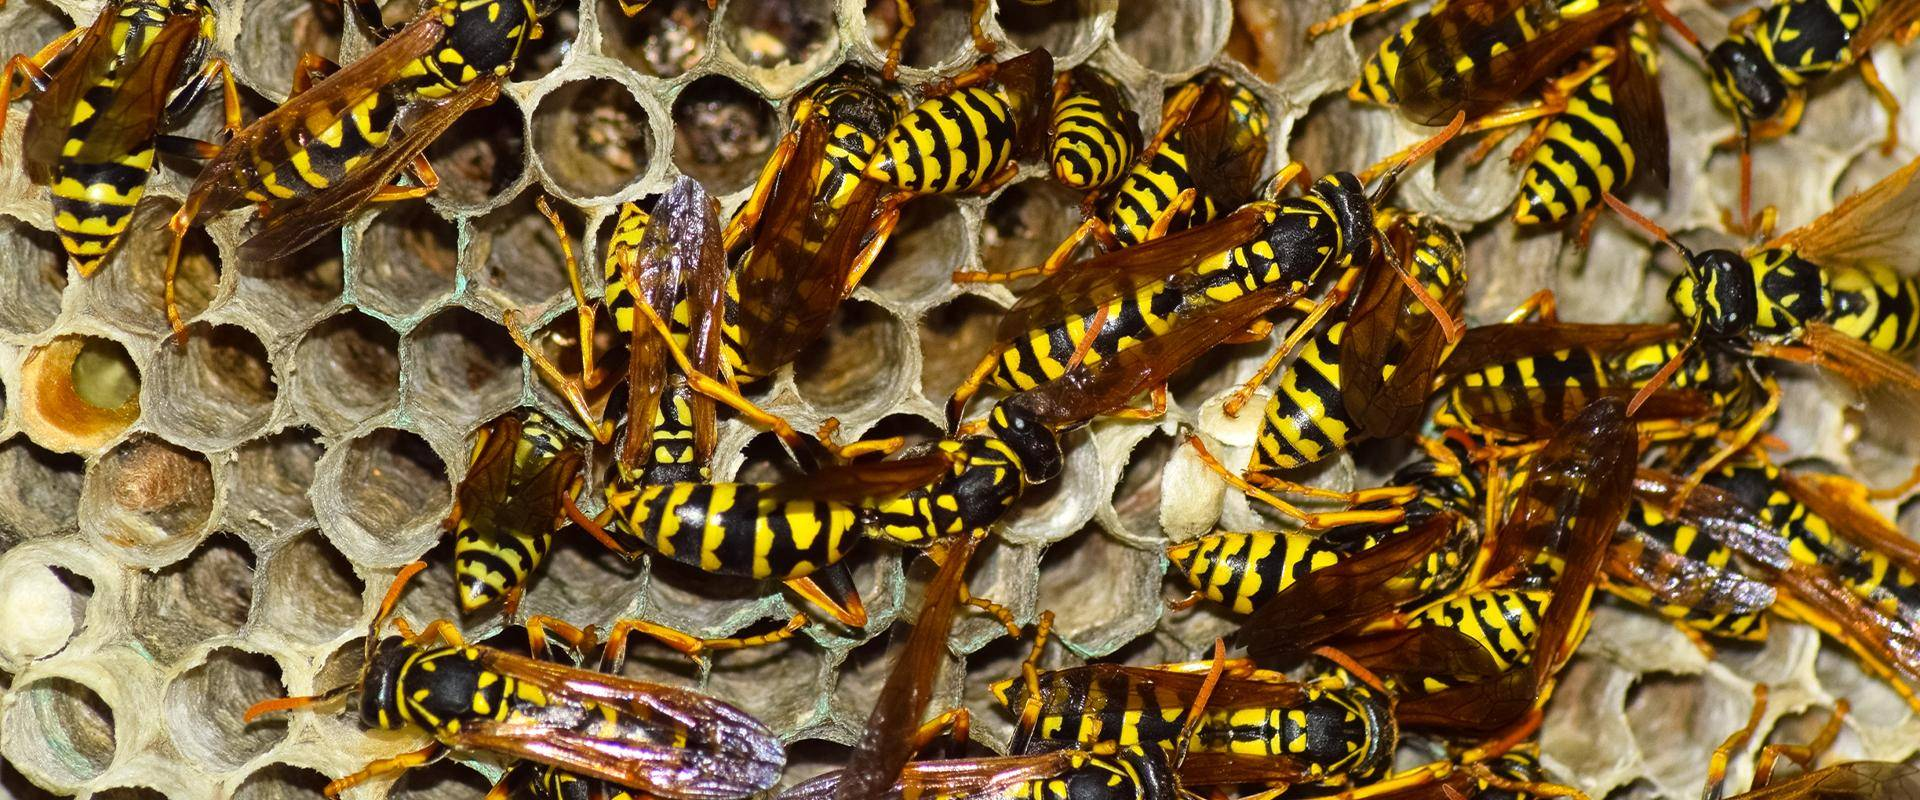 wasps on a hive